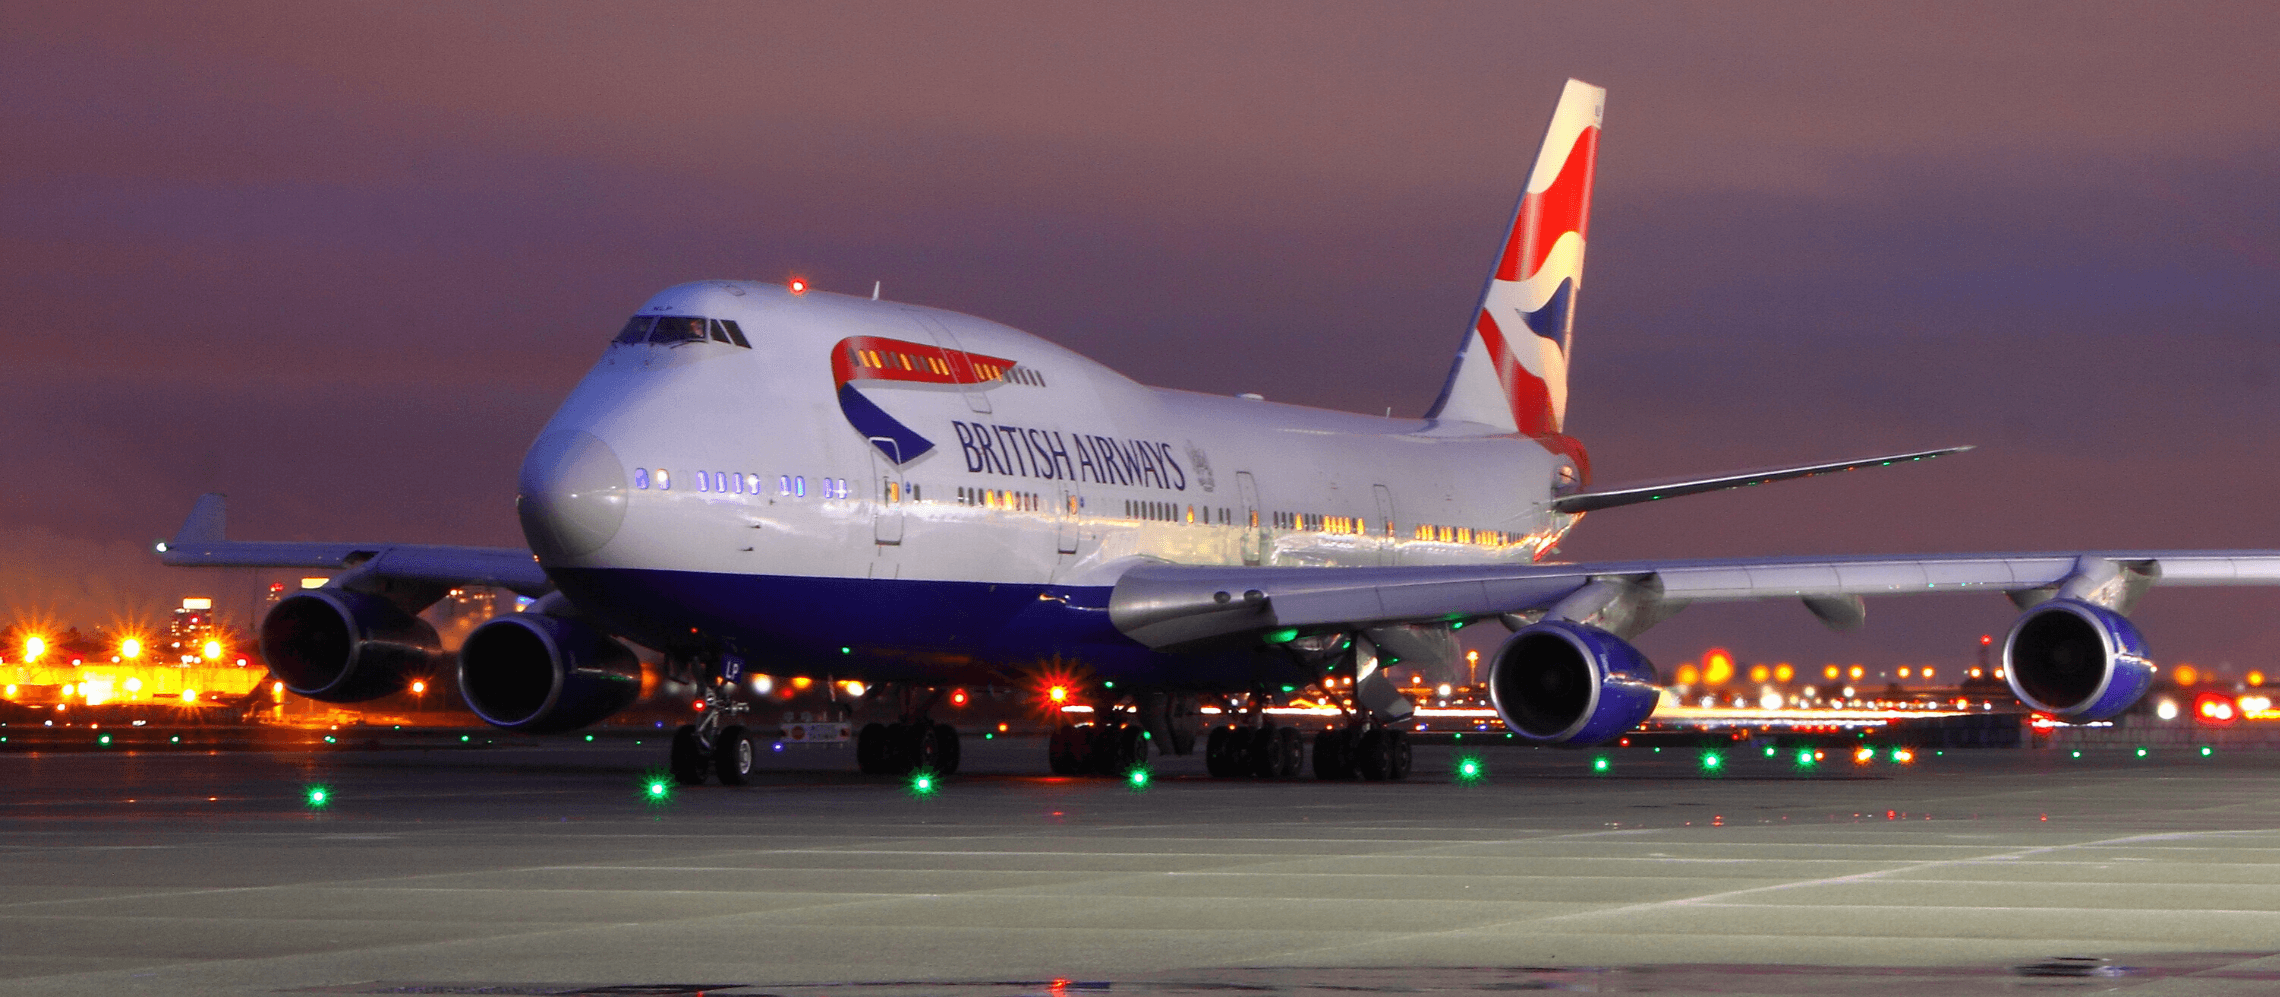 Photo for: A Chat With Wine & Beverage Manager at British Airways